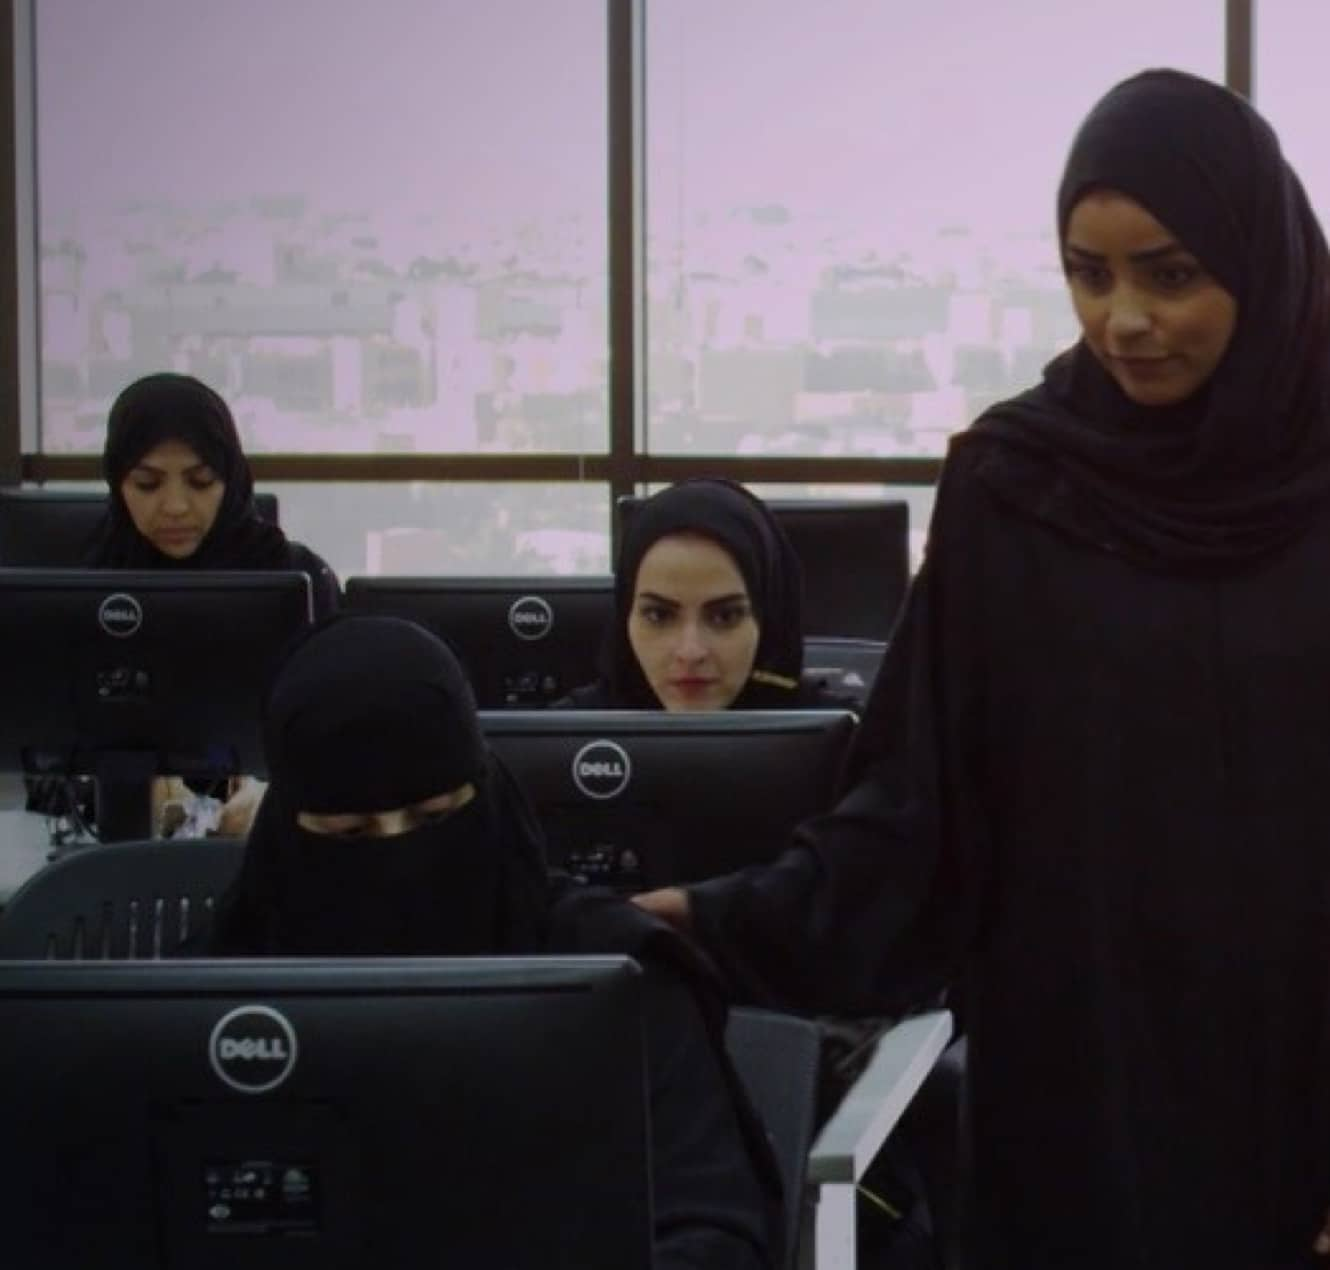 A trainer leads other women, all in headscarves or burqas and sitting in front of computers, during a learning and development session